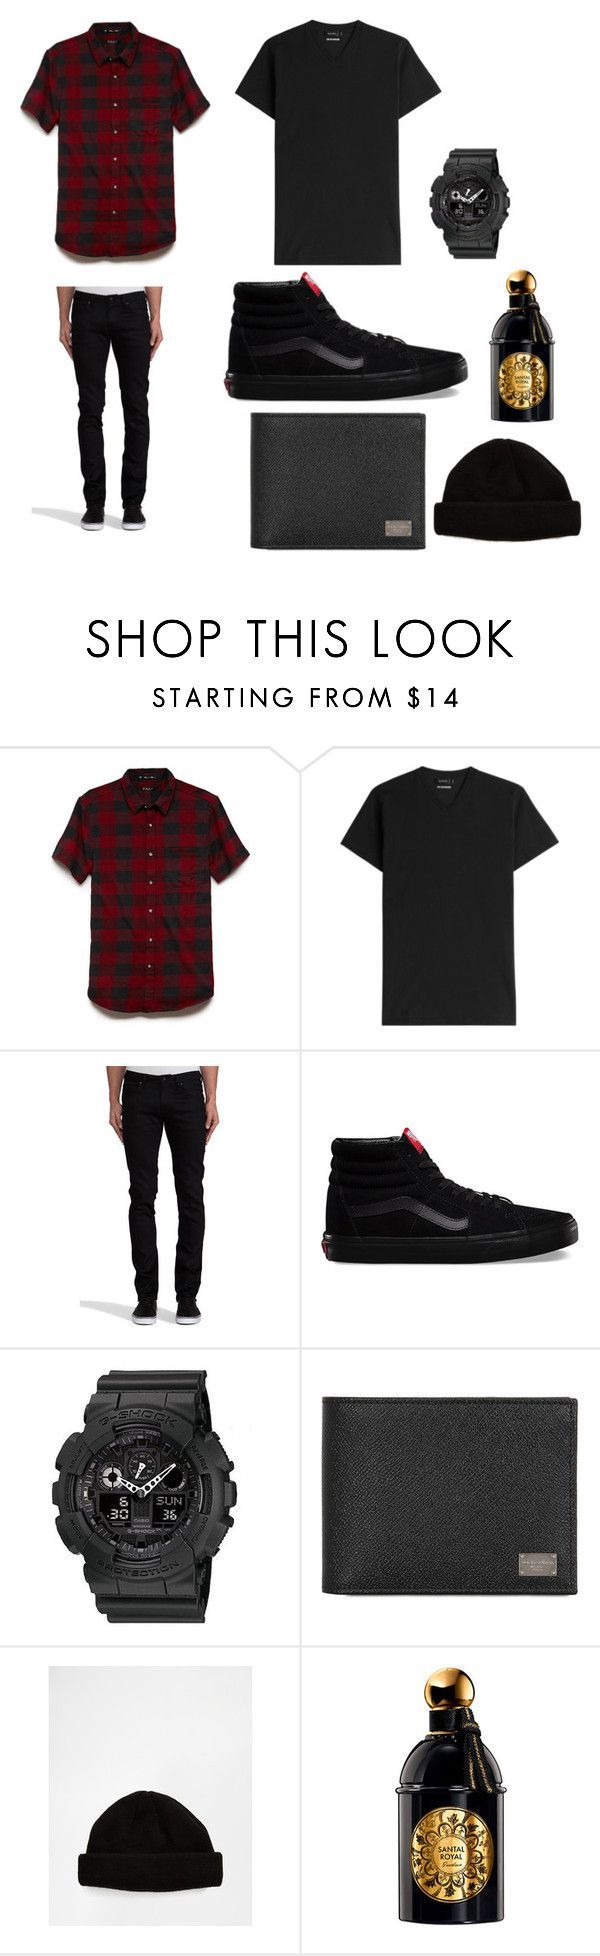 """""""SKATER STYLE"""" by lindadacreator ❤ liked on Polyvore featuring 21 Men, Jil Sander, Naked & Famous, Vans, G-Shock, Dolce&Gabbana, ASOS, Guerlain, mens and men - mens shoes and boots, mens fashion shoes casual, cheap mens dress shoes online"""